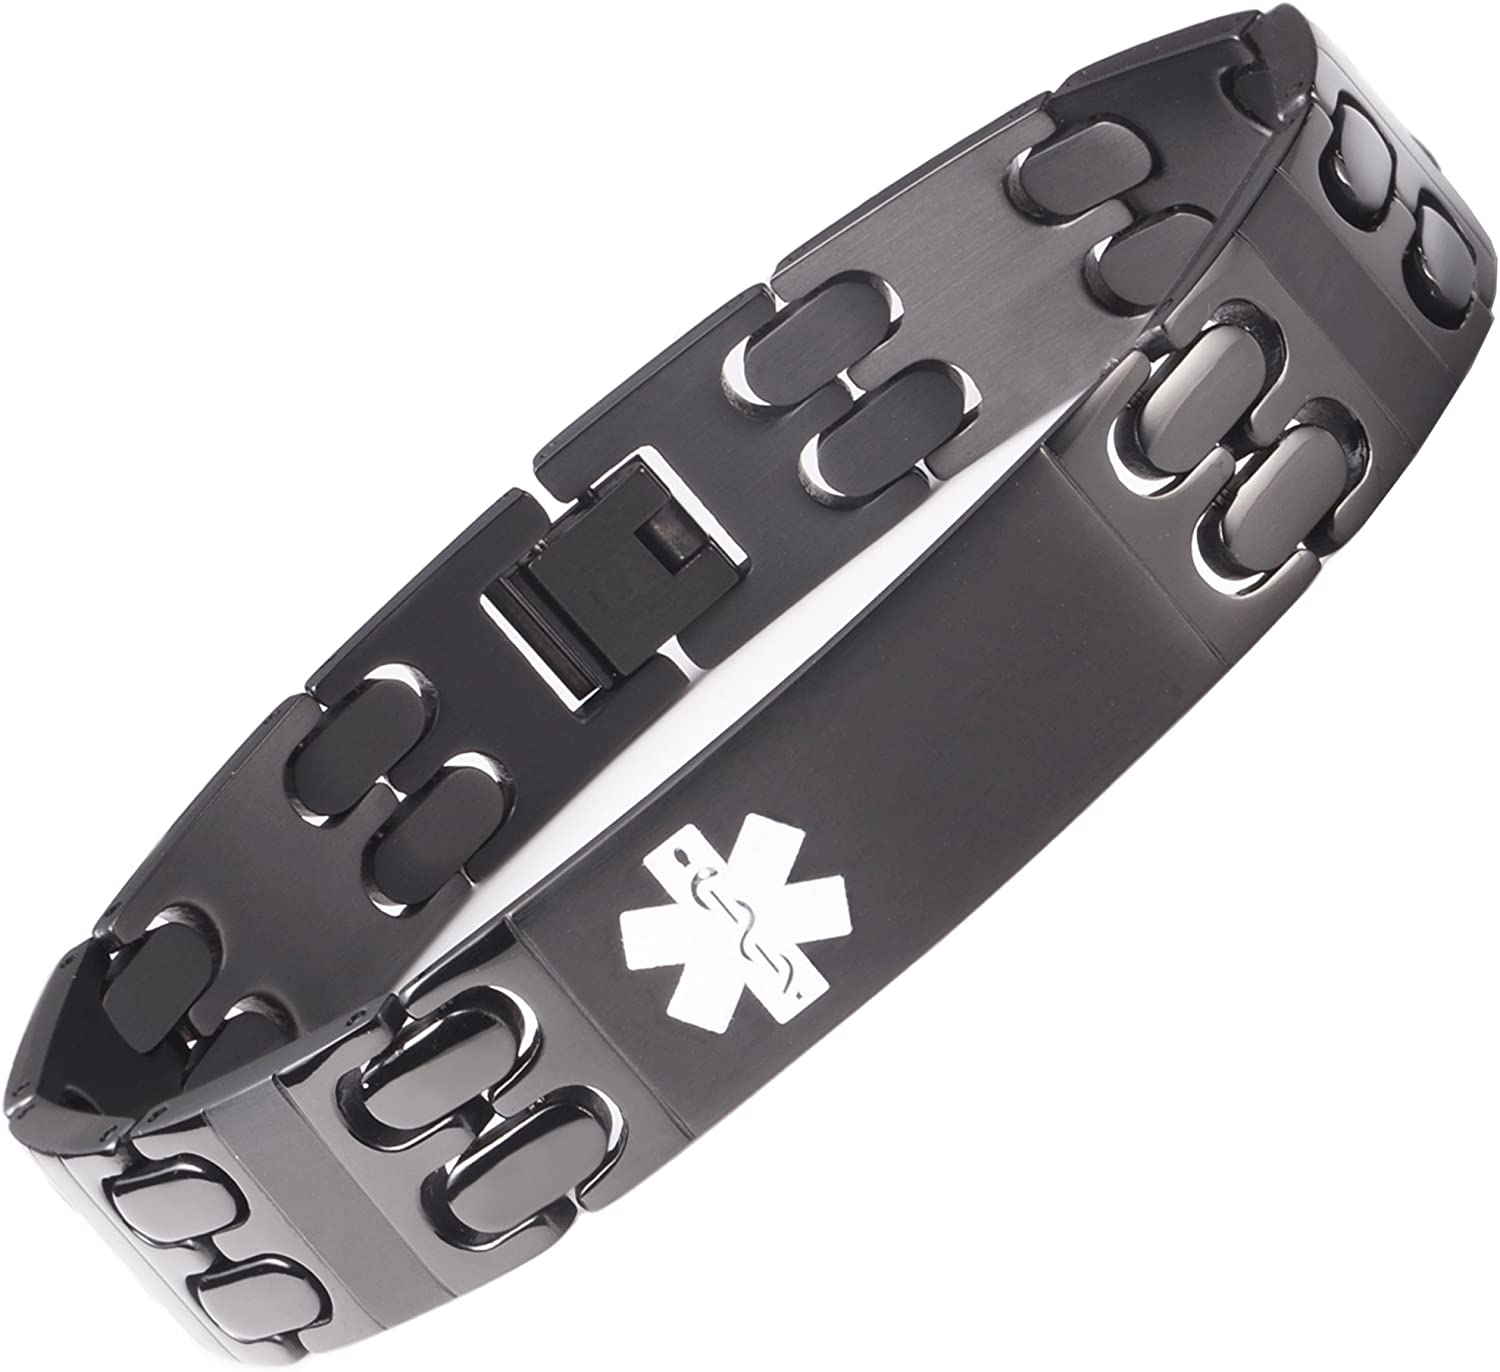 linnalove Black Titanium/Stainless Steel Medical Alert id Bracelet for Men and Women with Free Engraving